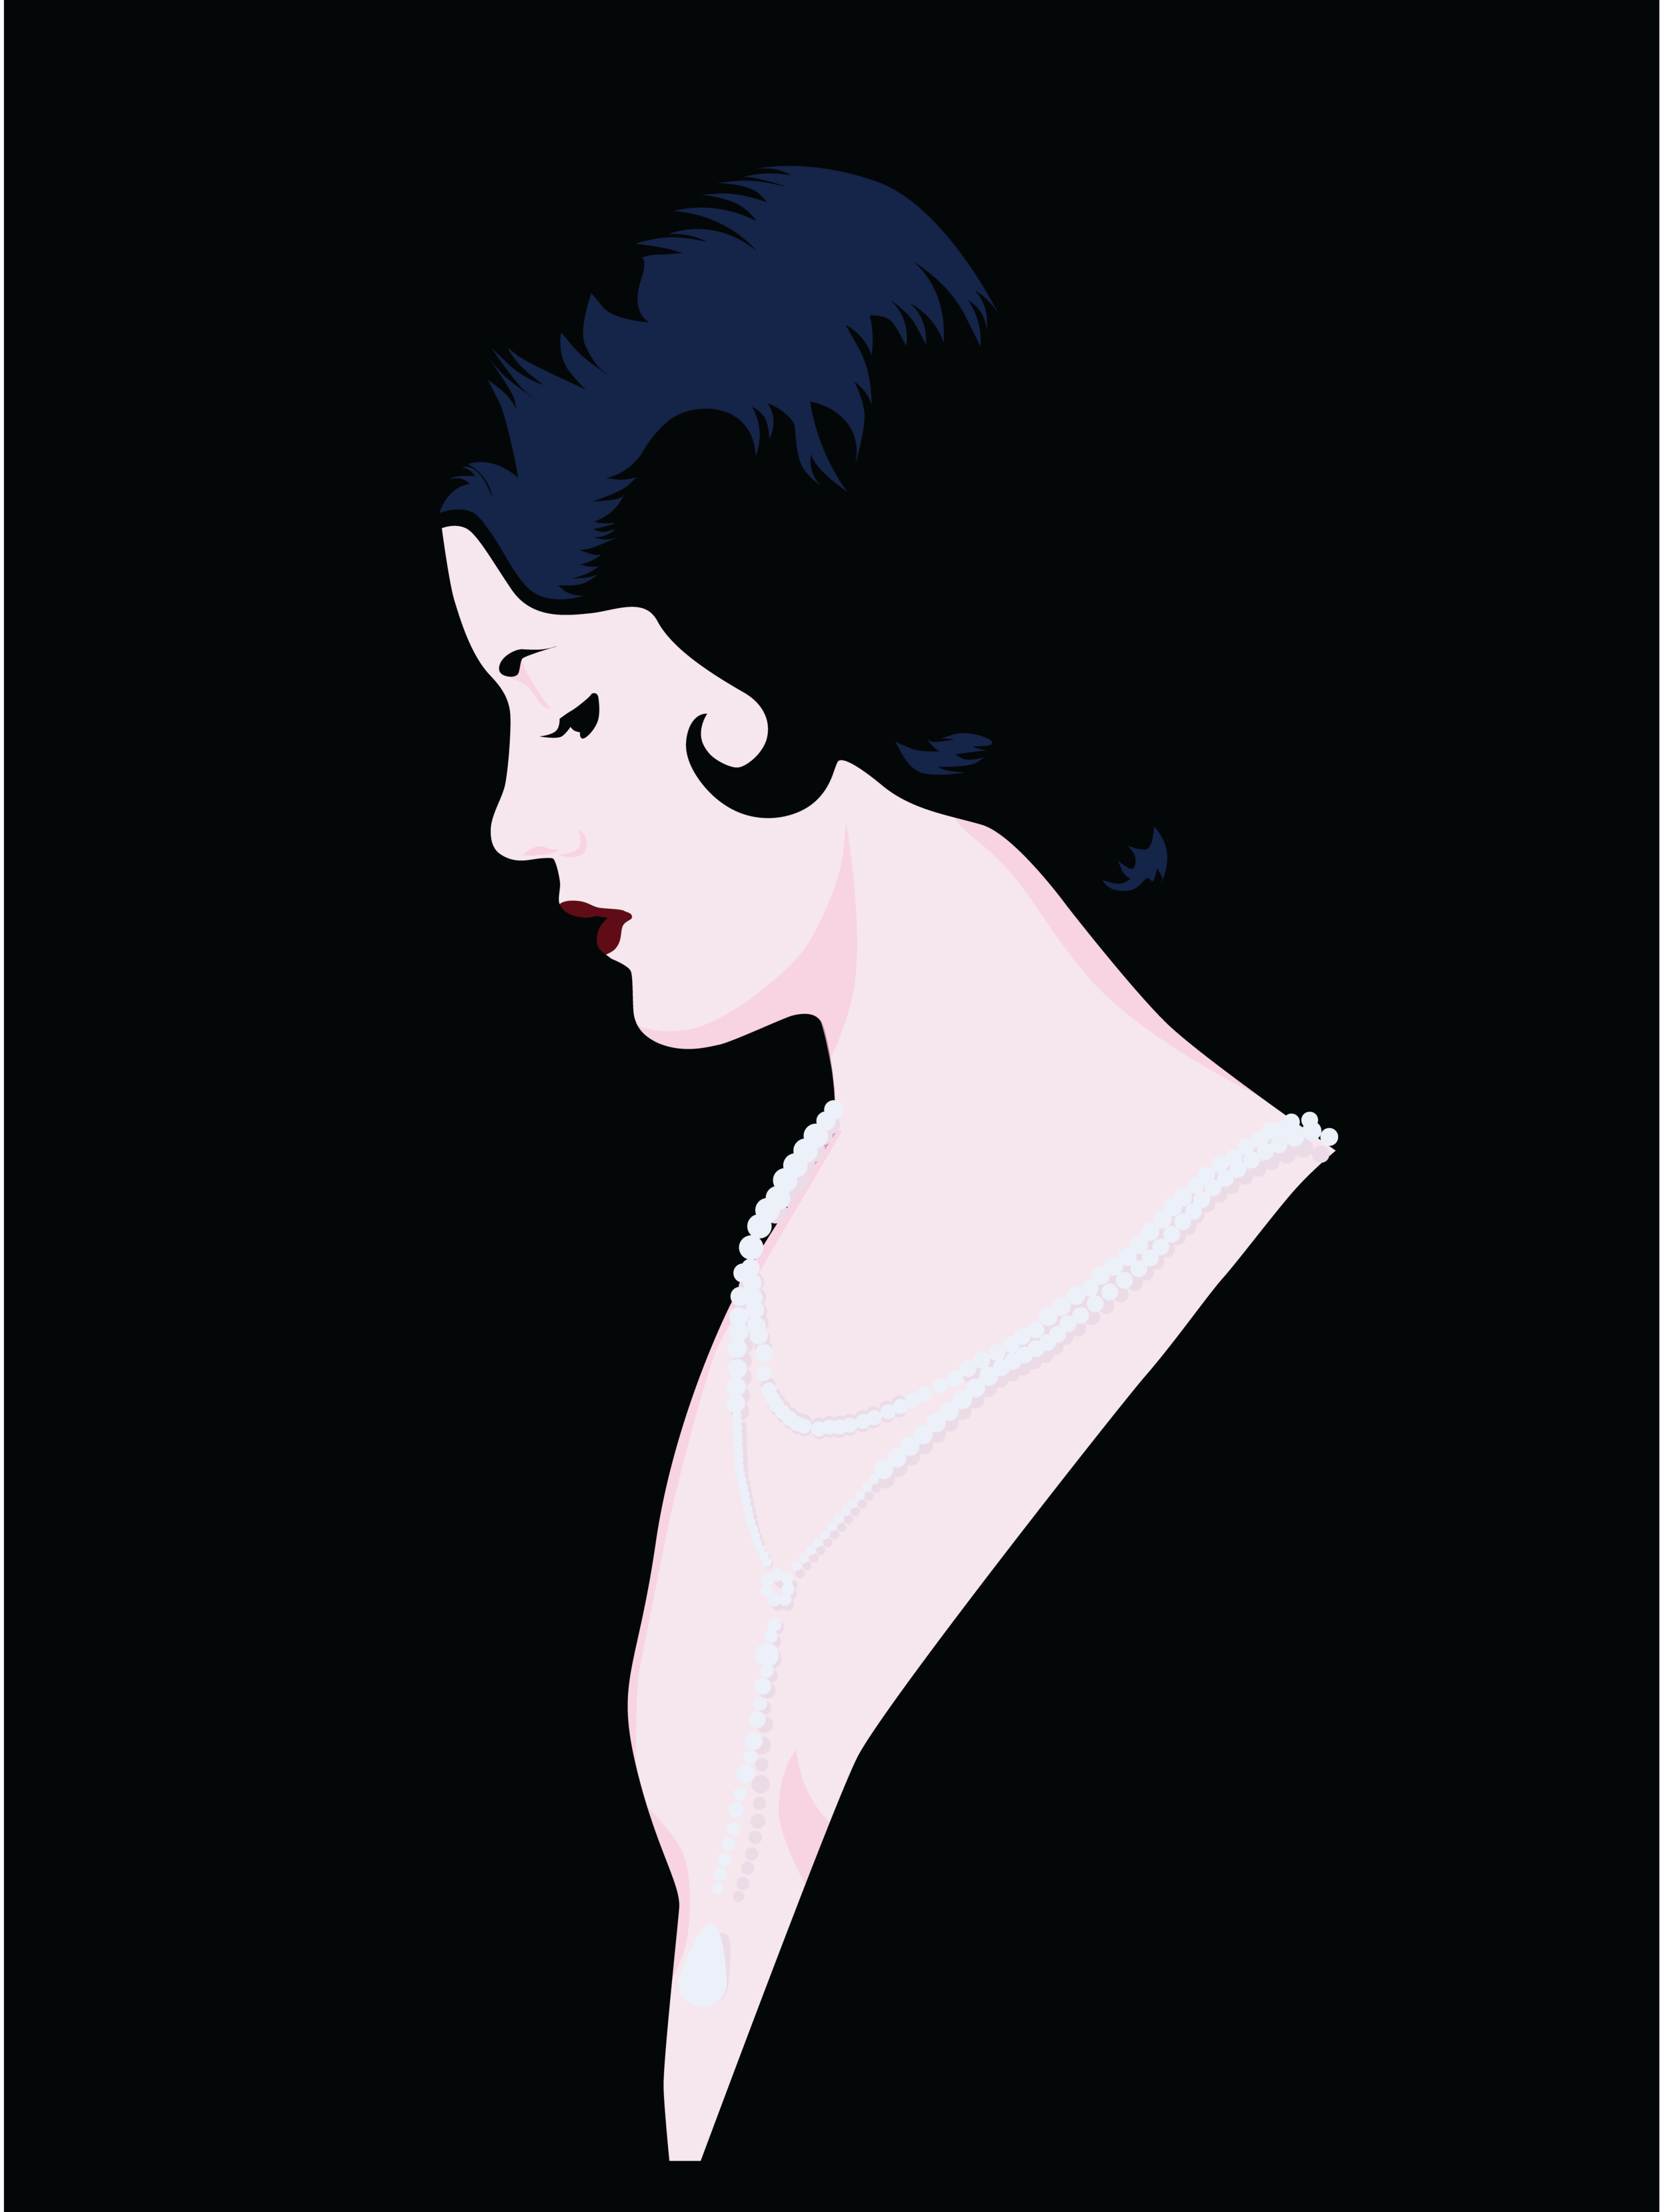 Woman with Pearls Illustration-01.png